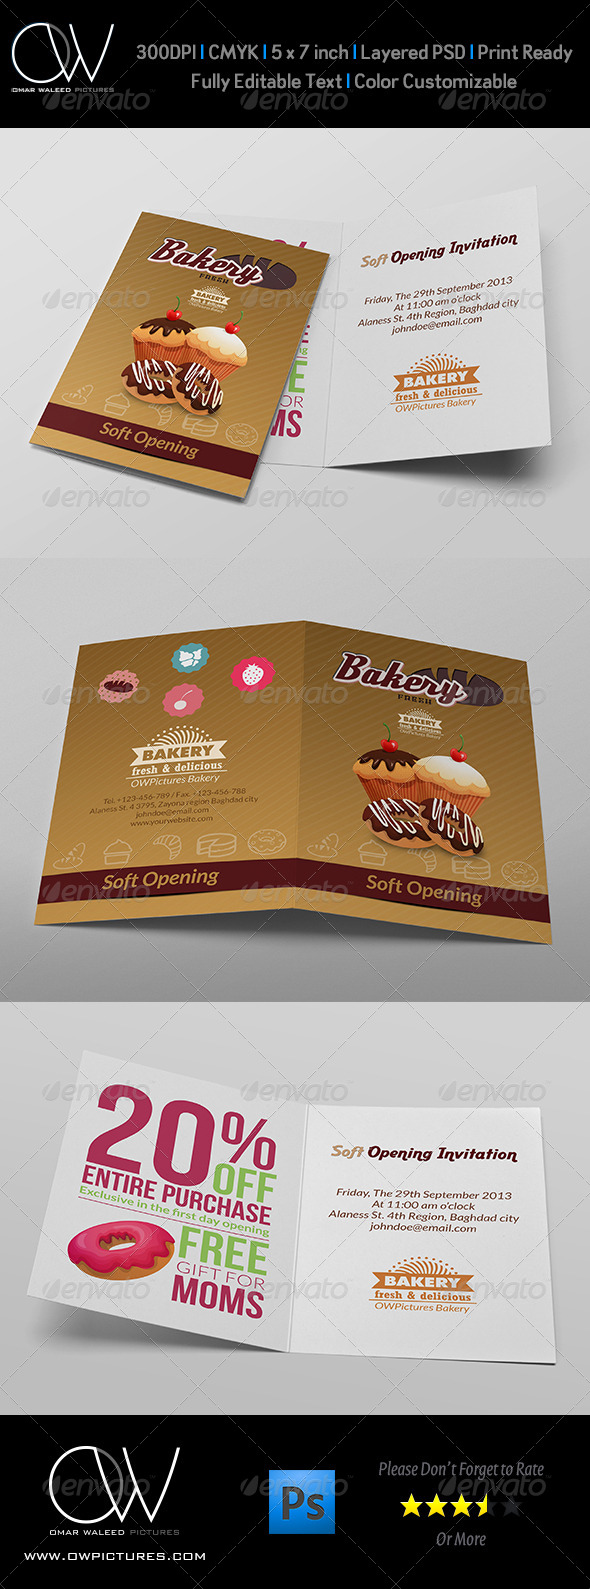 Bakery soft opening invitation card template by owpictures bakery soft opening invitation card template invitations cards invites stopboris Choice Image